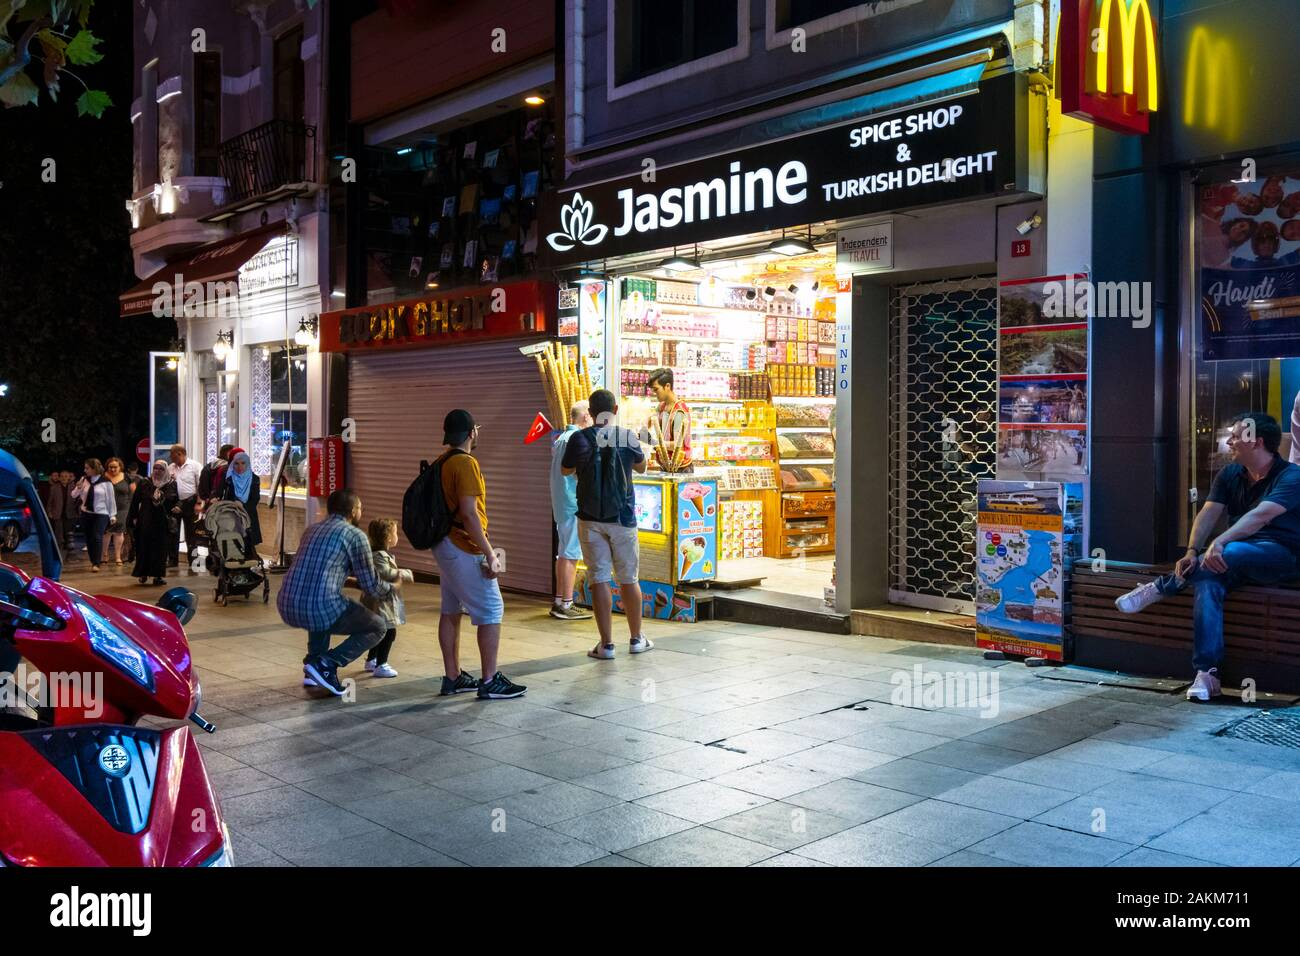 A Turkish ice cream salesman sells from a spice and candy shop late night in the Sultanahmet district of Istanbul, Turkey Stock Photo